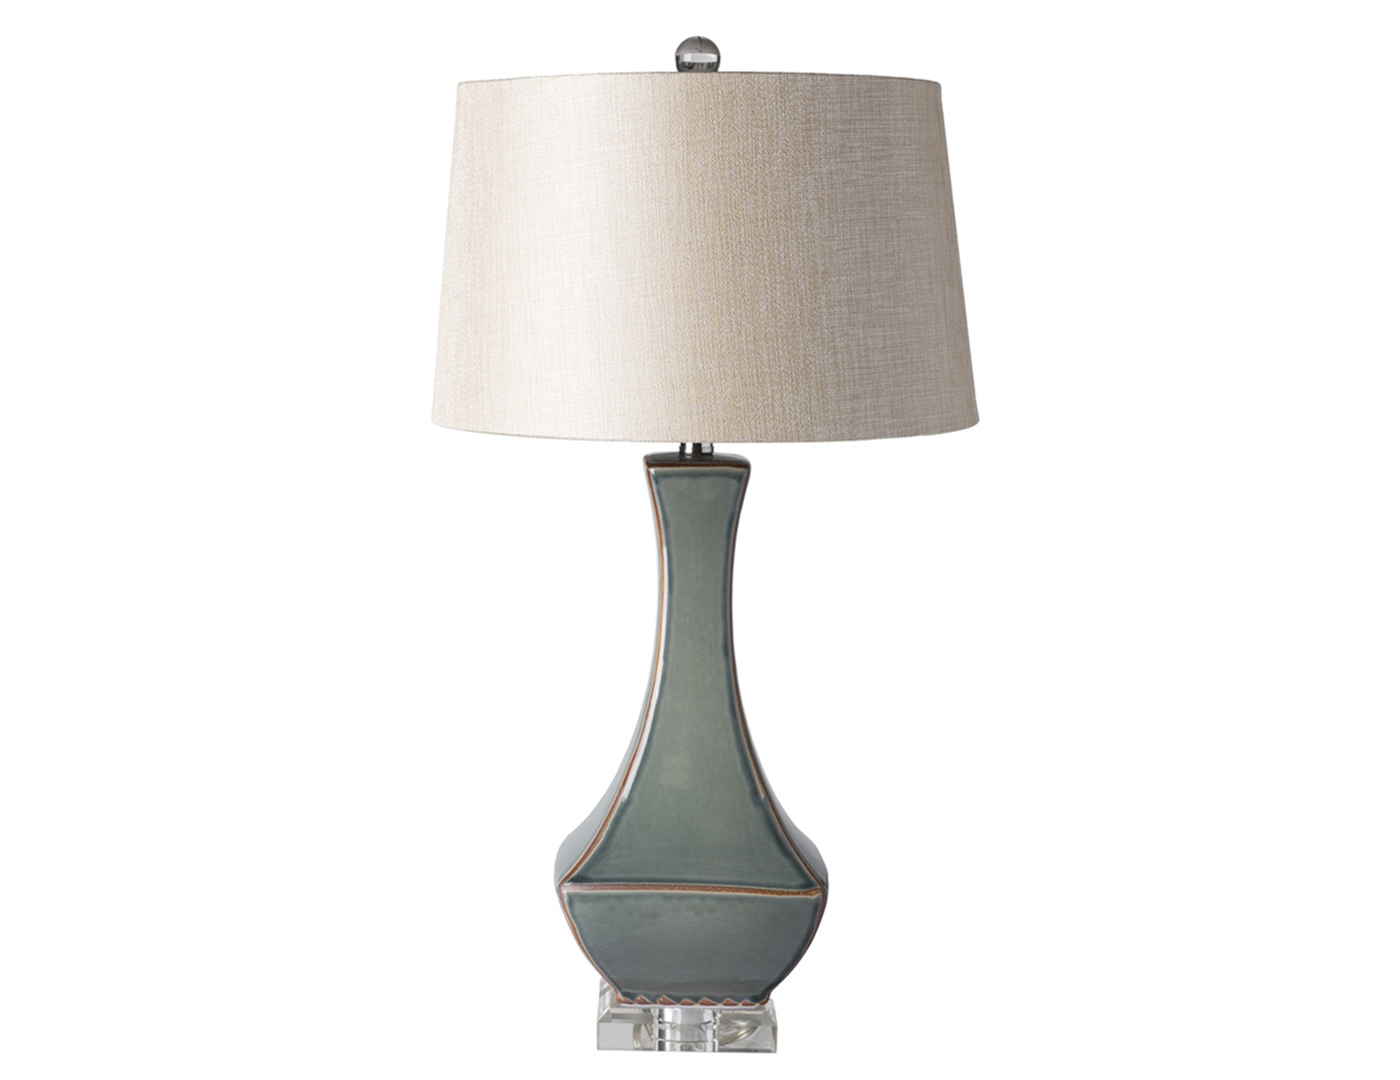 "Blue and Grey Ceramic Table Lamp 30.5""H"